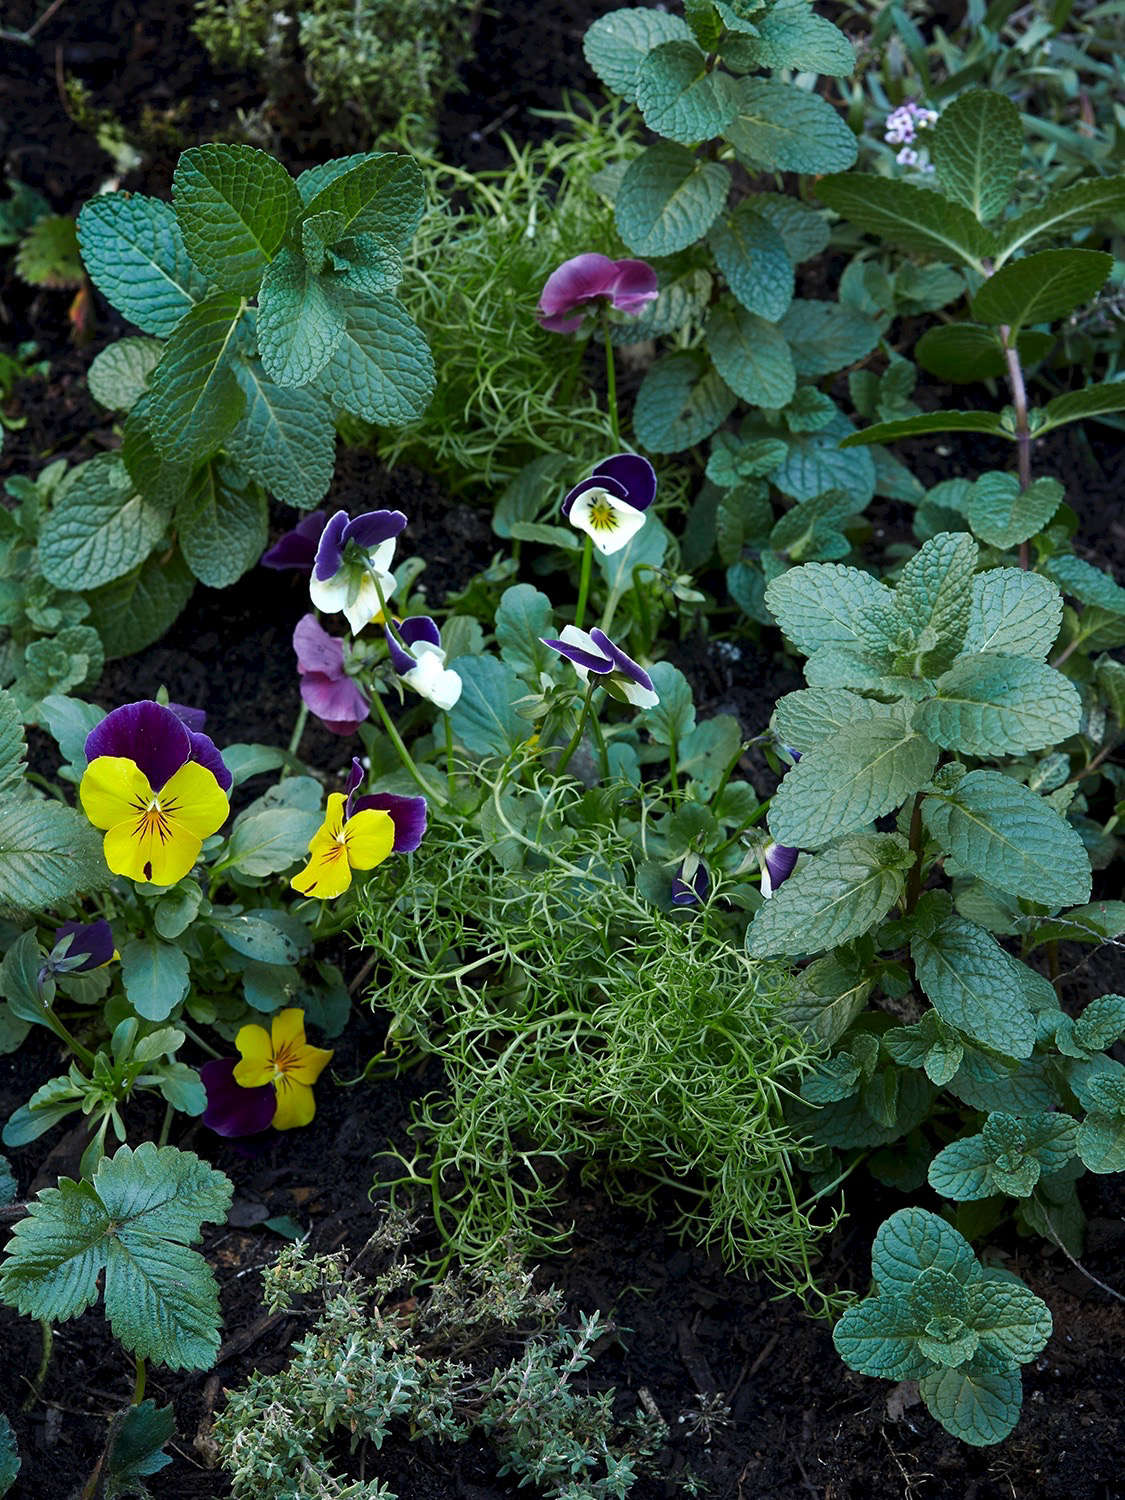 Pansies, chamomile, mint, and strawberries are happy companions in Gardenista editor Michelle Slatalla&#8